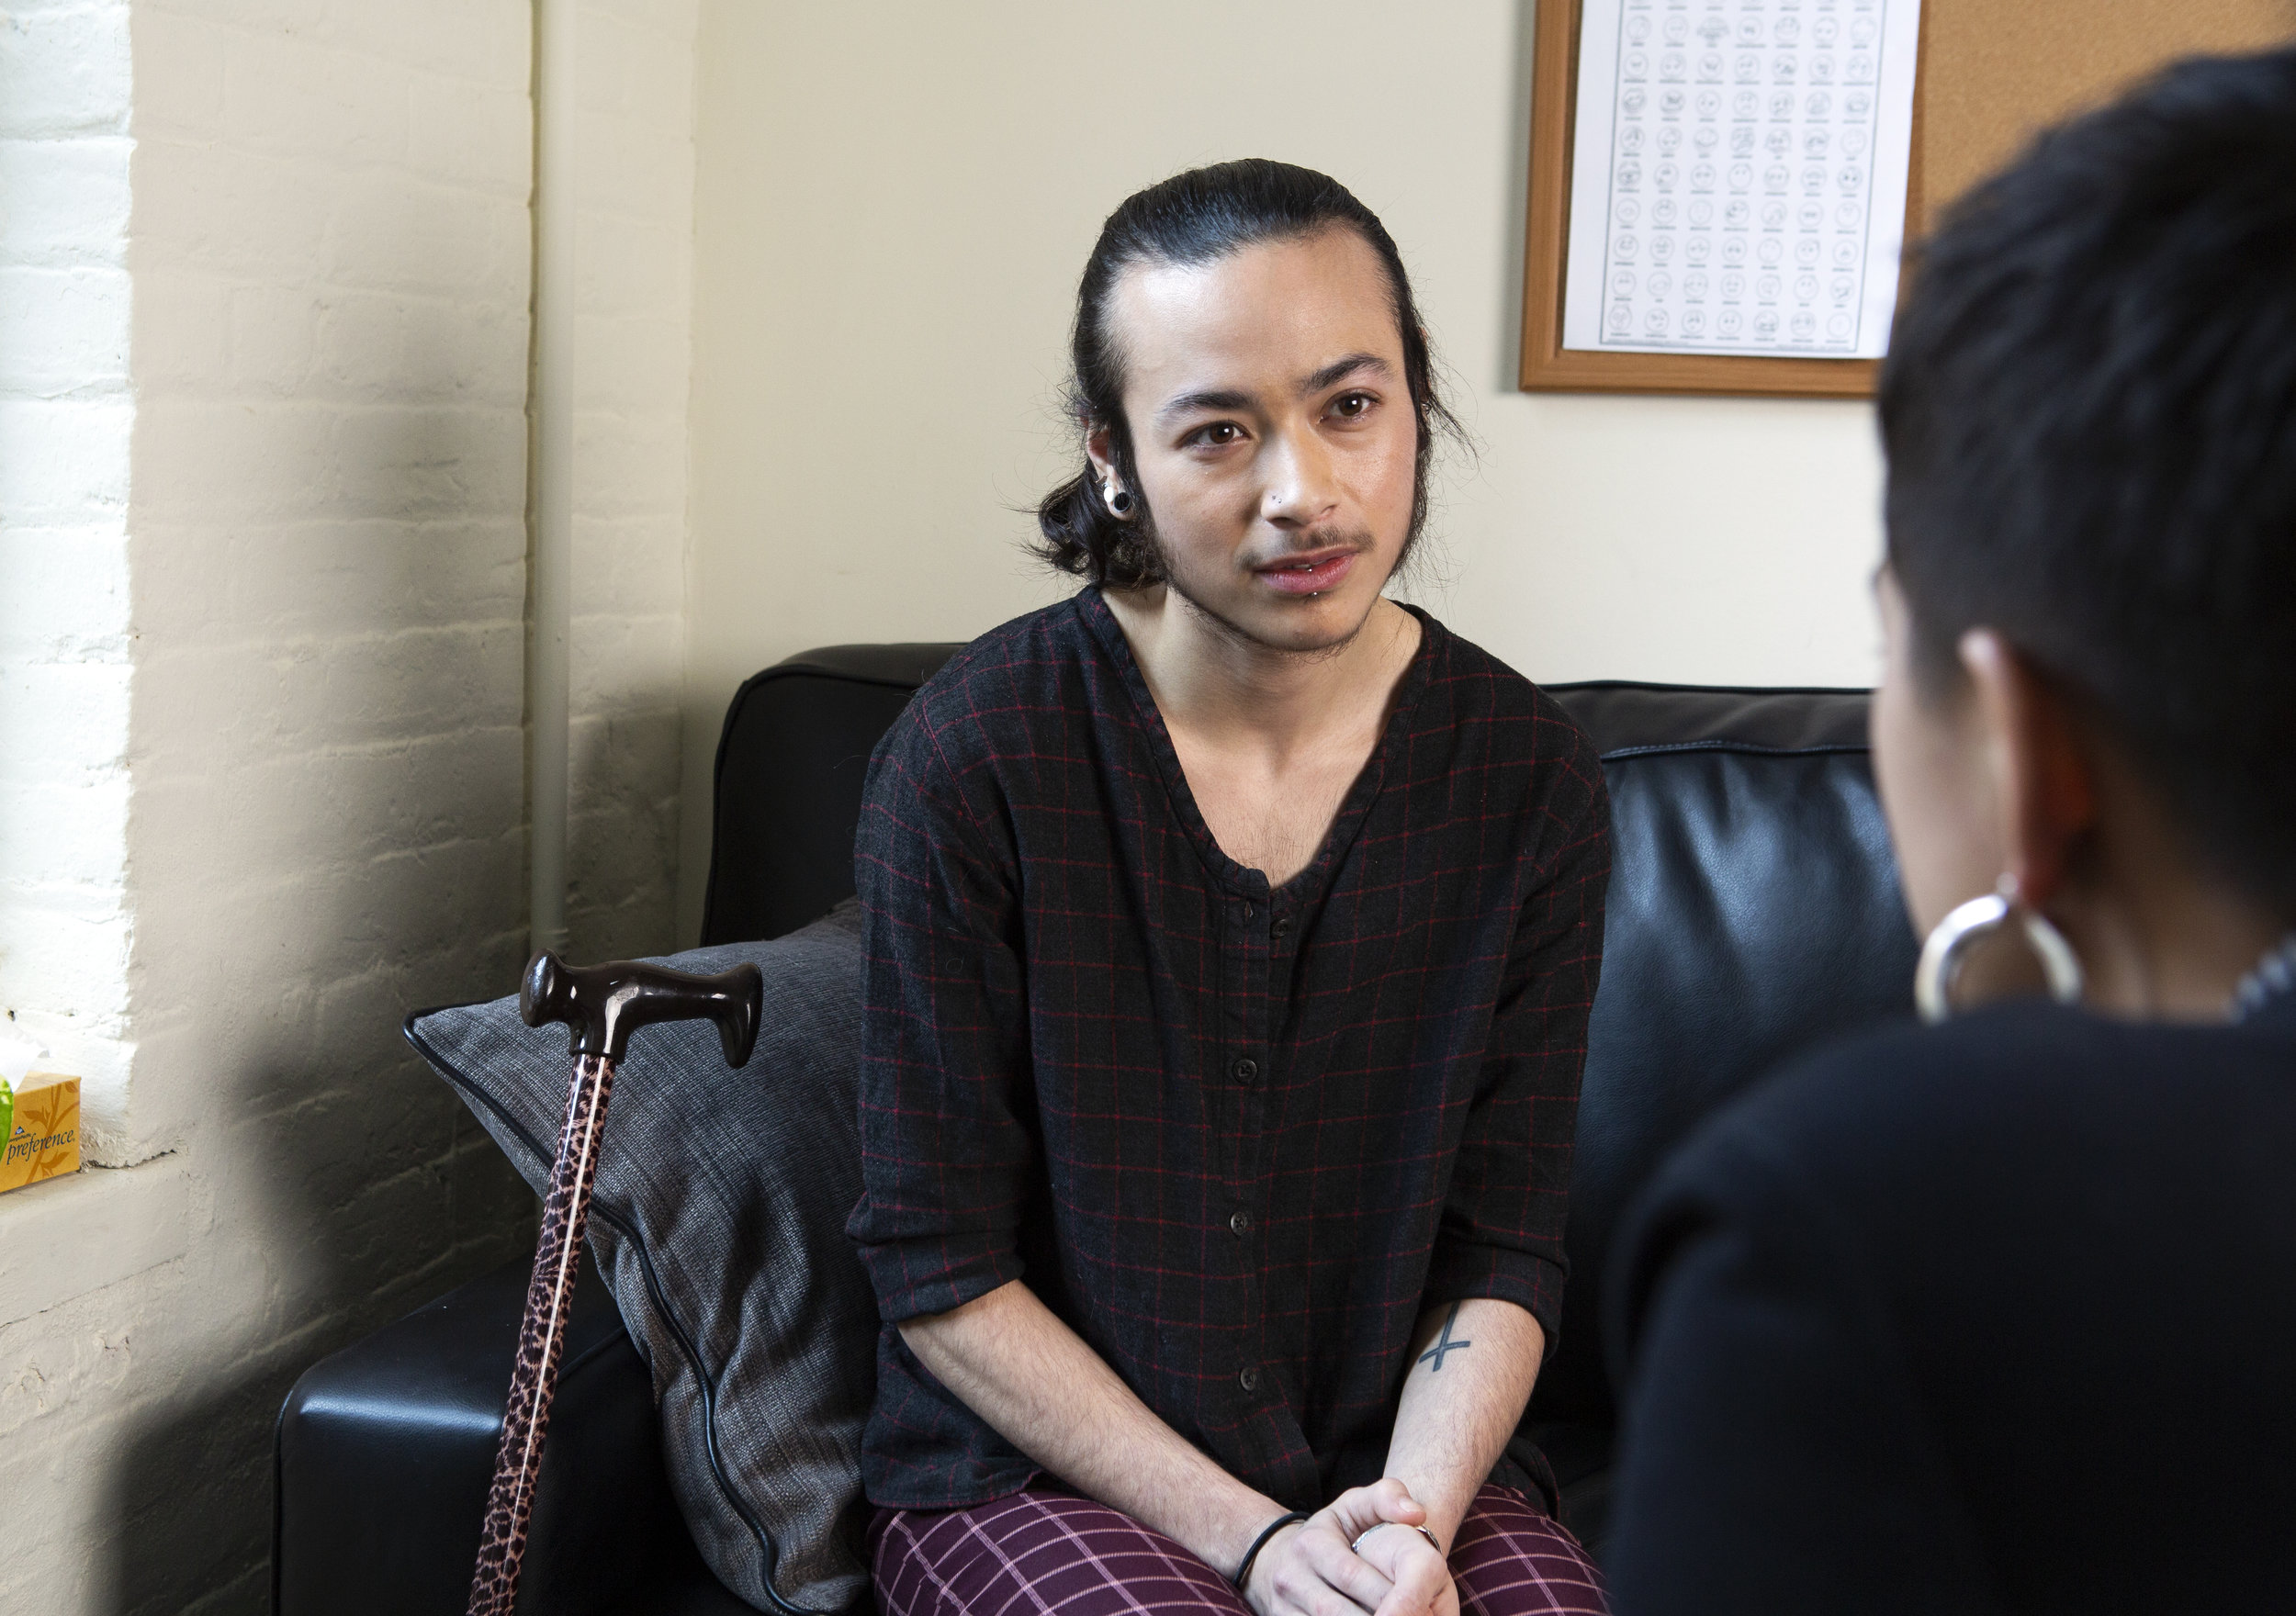 A genderqueer person sitting on a therapist's couch, listening